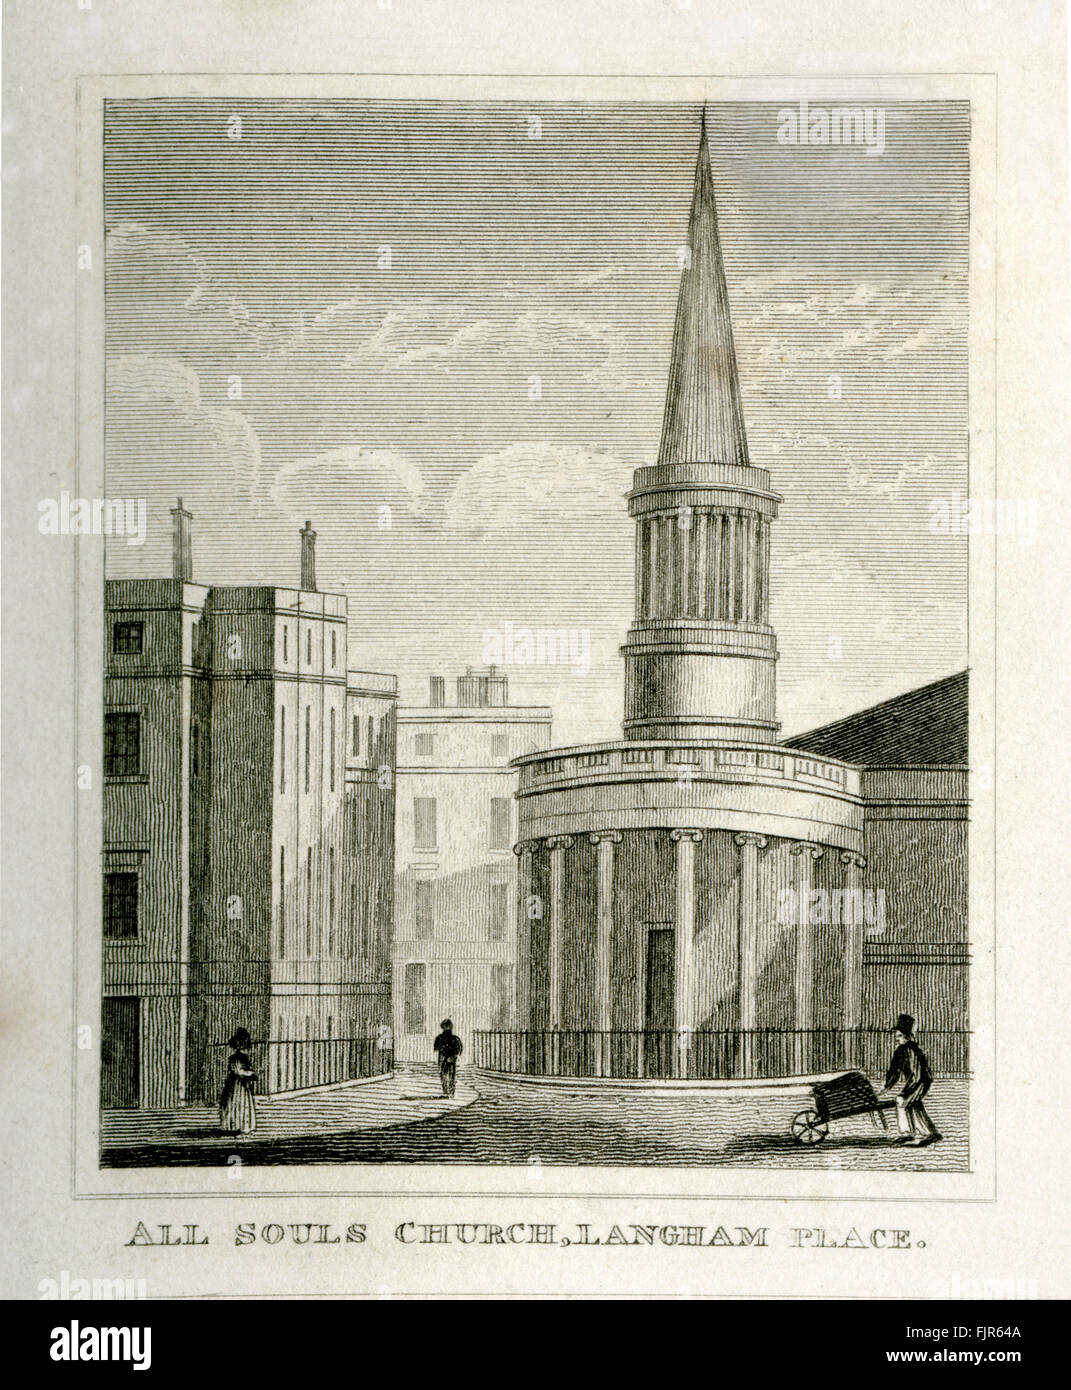 All Souls Church, Langham Place, London 1853. Designed by John Nash (1752 – 1835). Consecrated 1824. Stock Photo